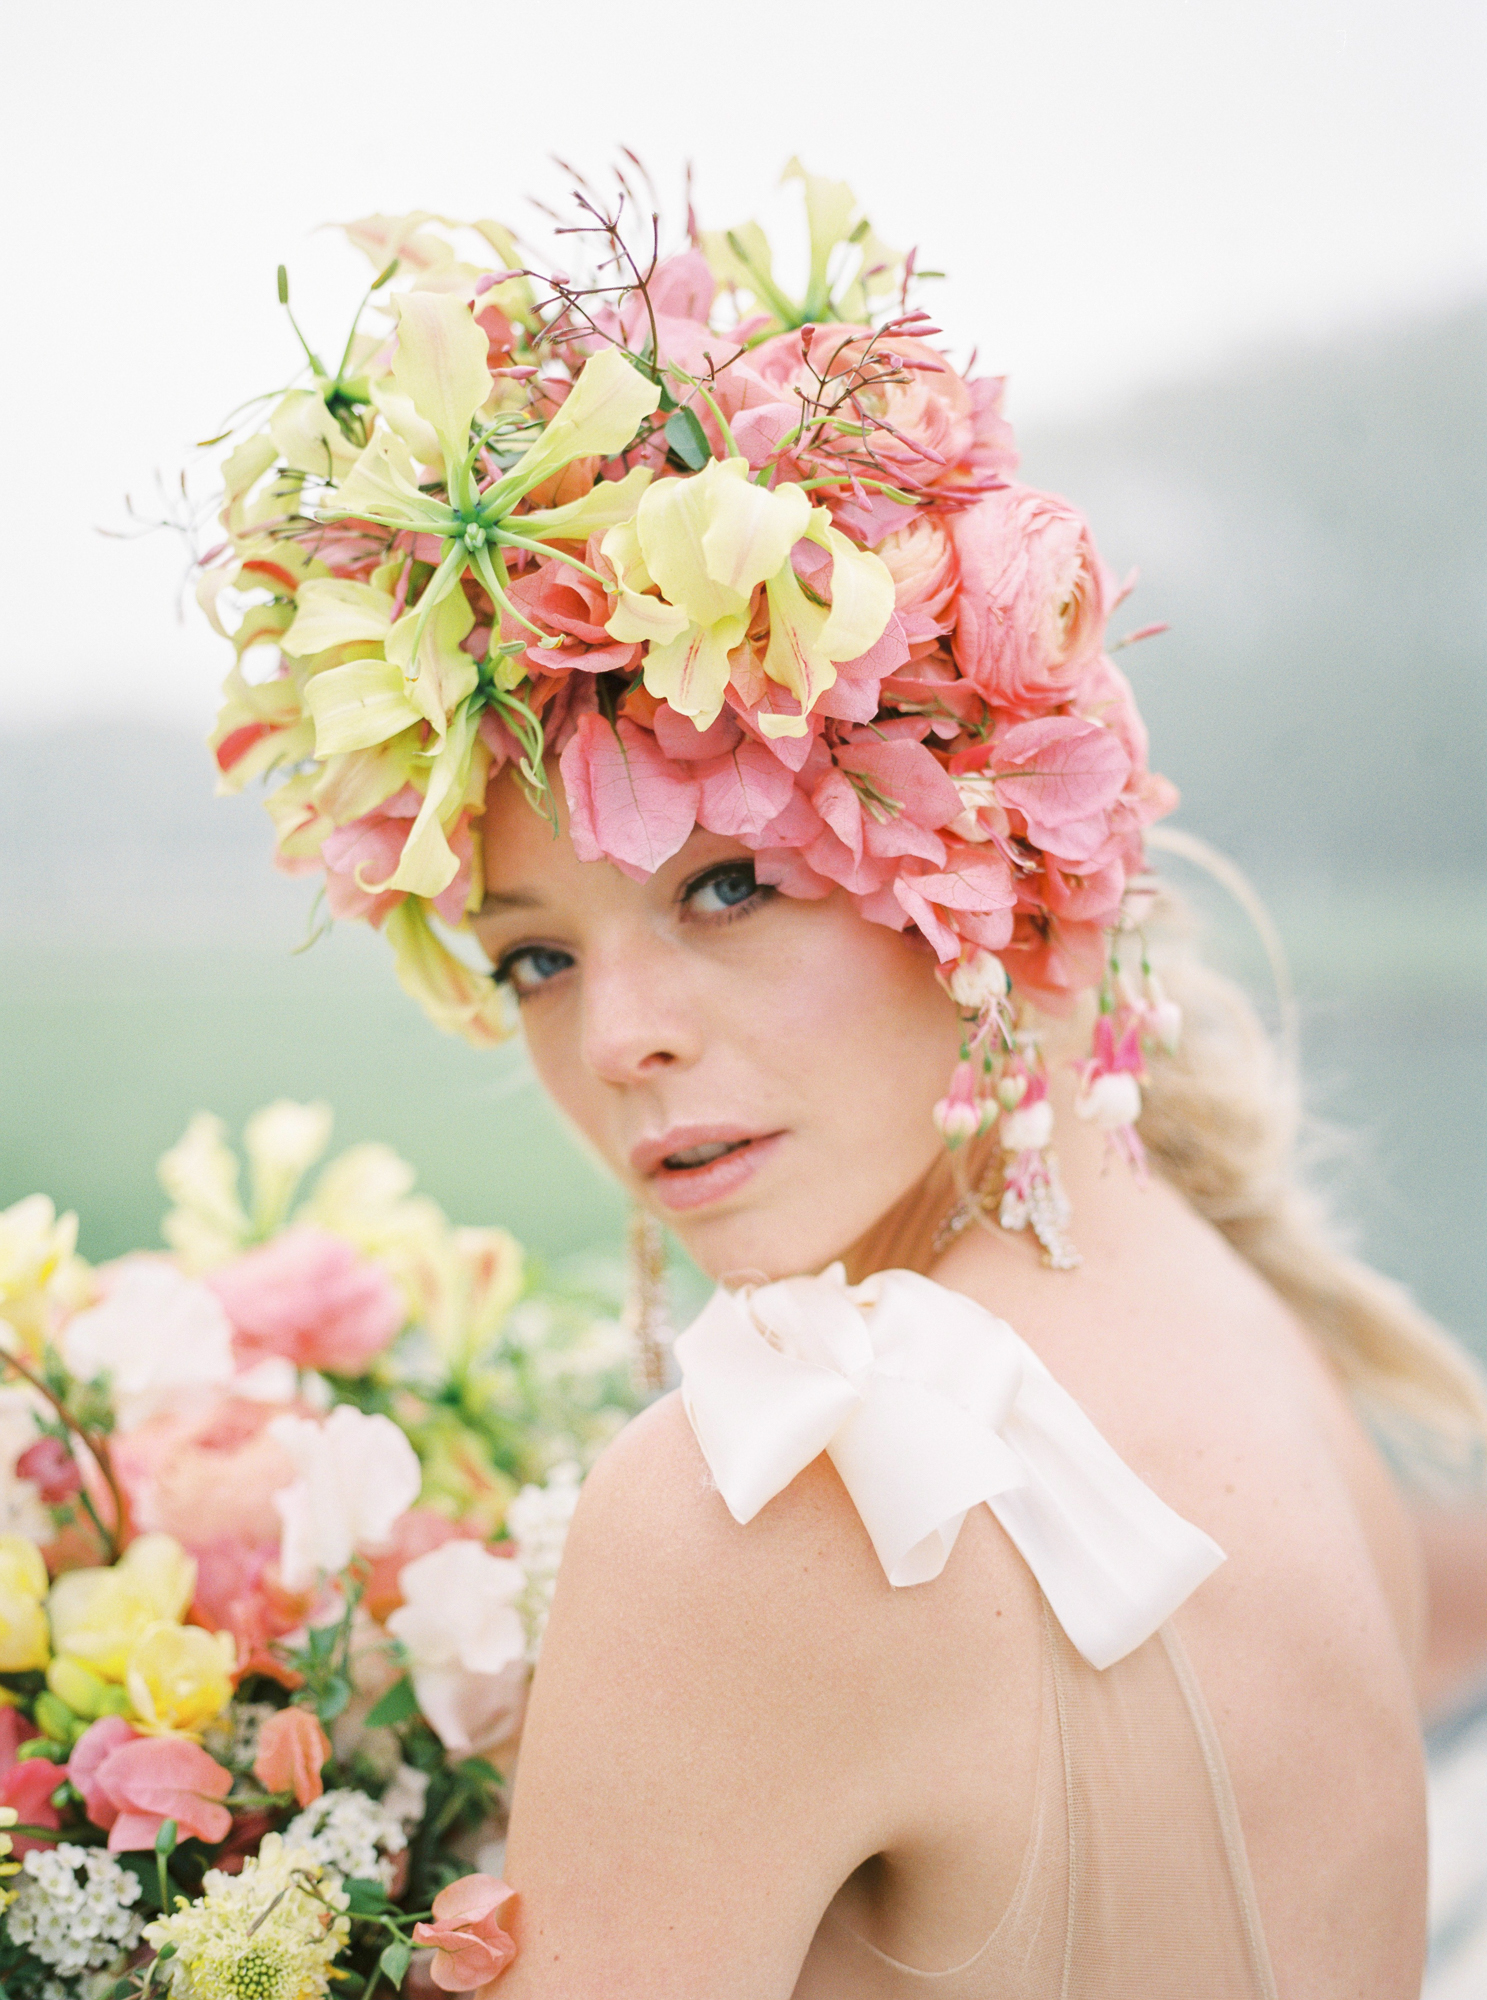 travellur_photoshoot__summer_in_versailles_wedding_flowers_bridal_luxe_shoot_floral_france_isibeal_studio.jpg